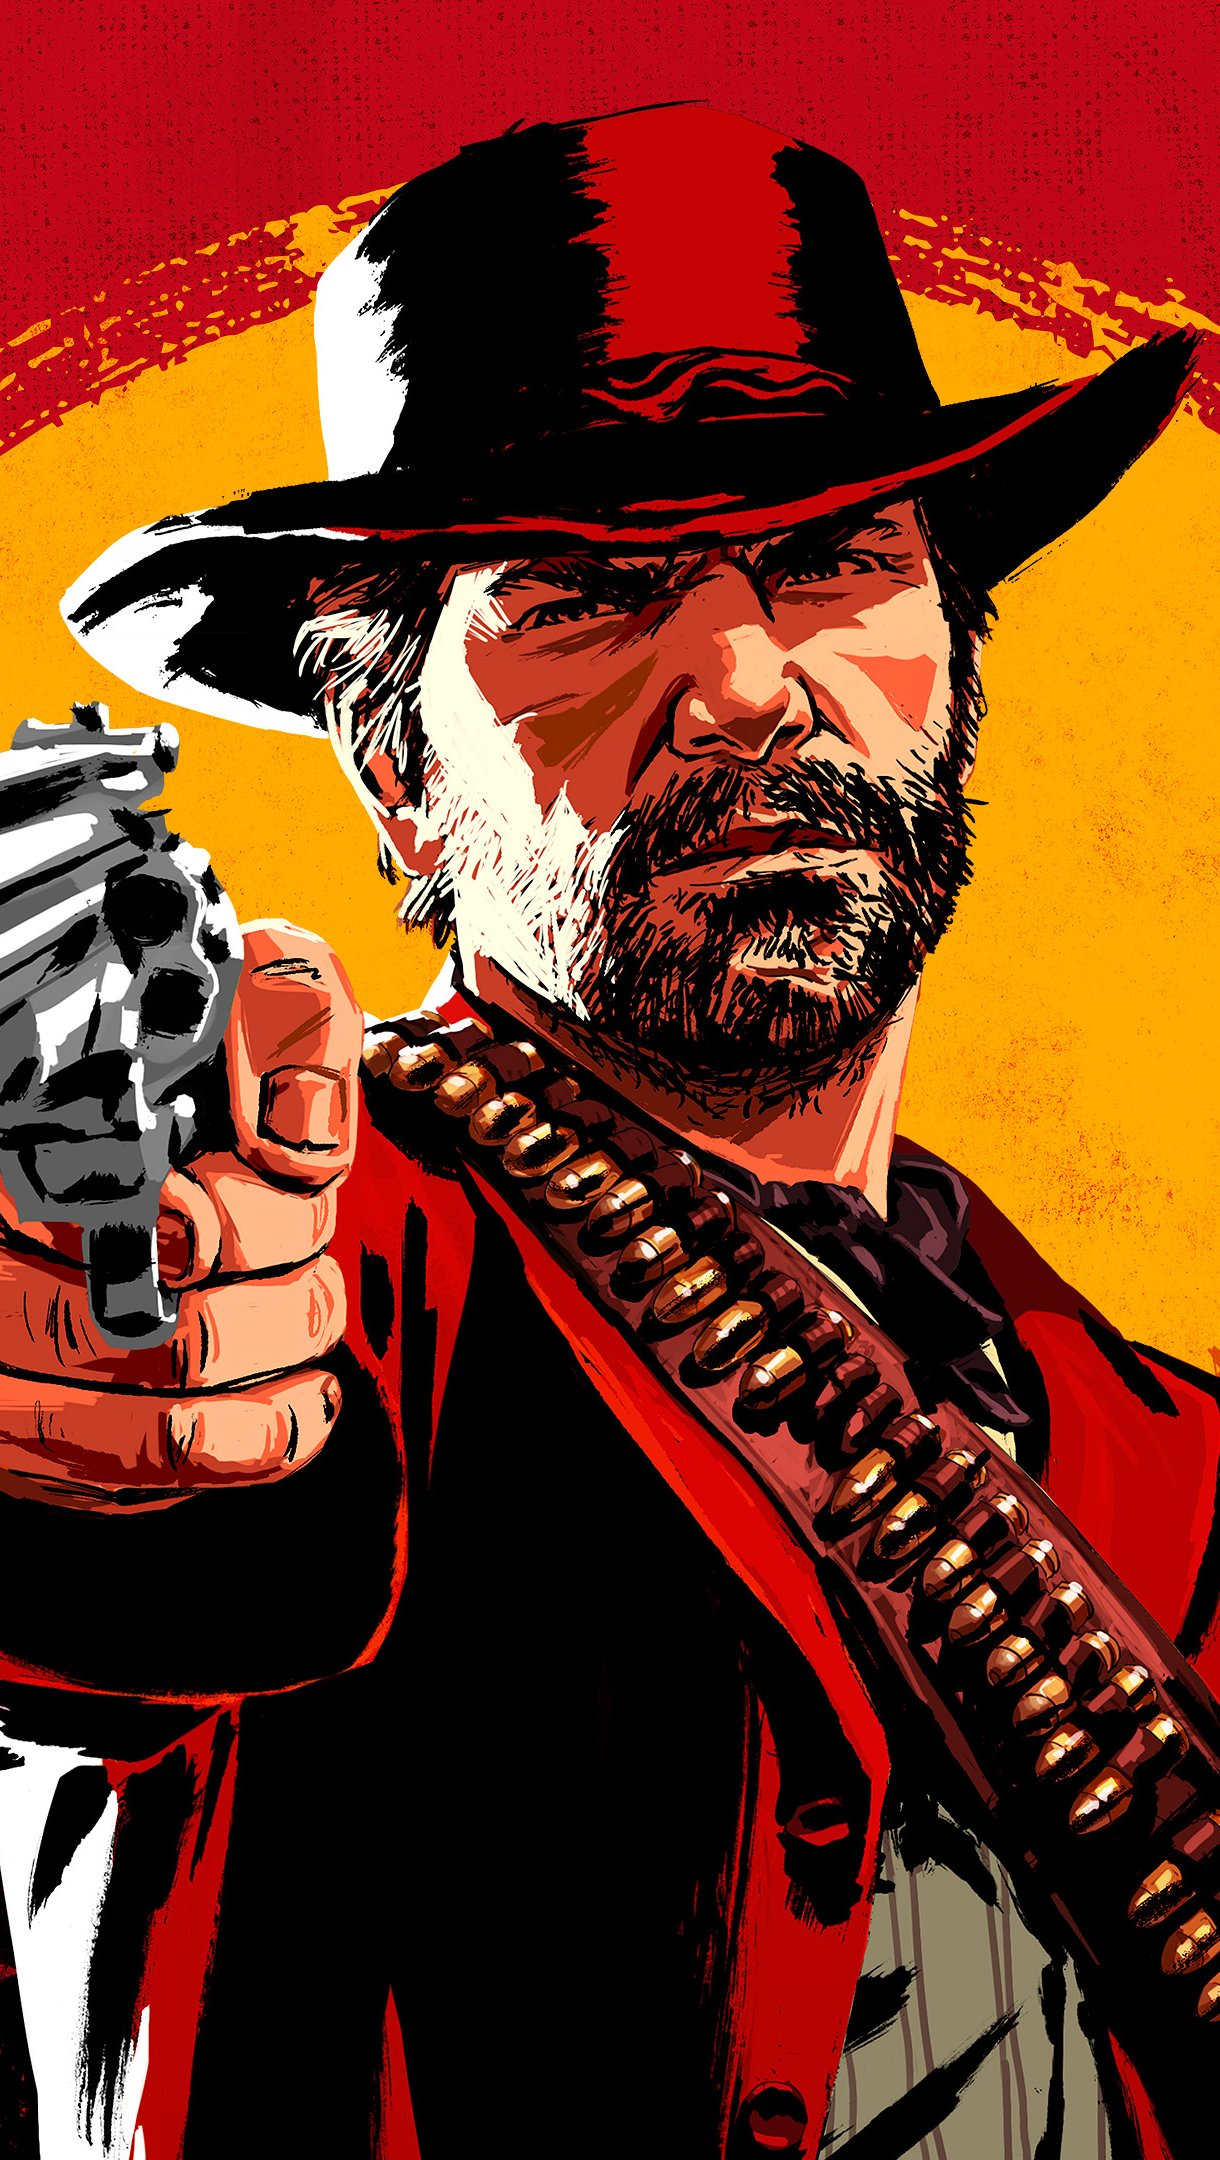 Wallpaper Red Dead Redemption 2 Cover Vertical